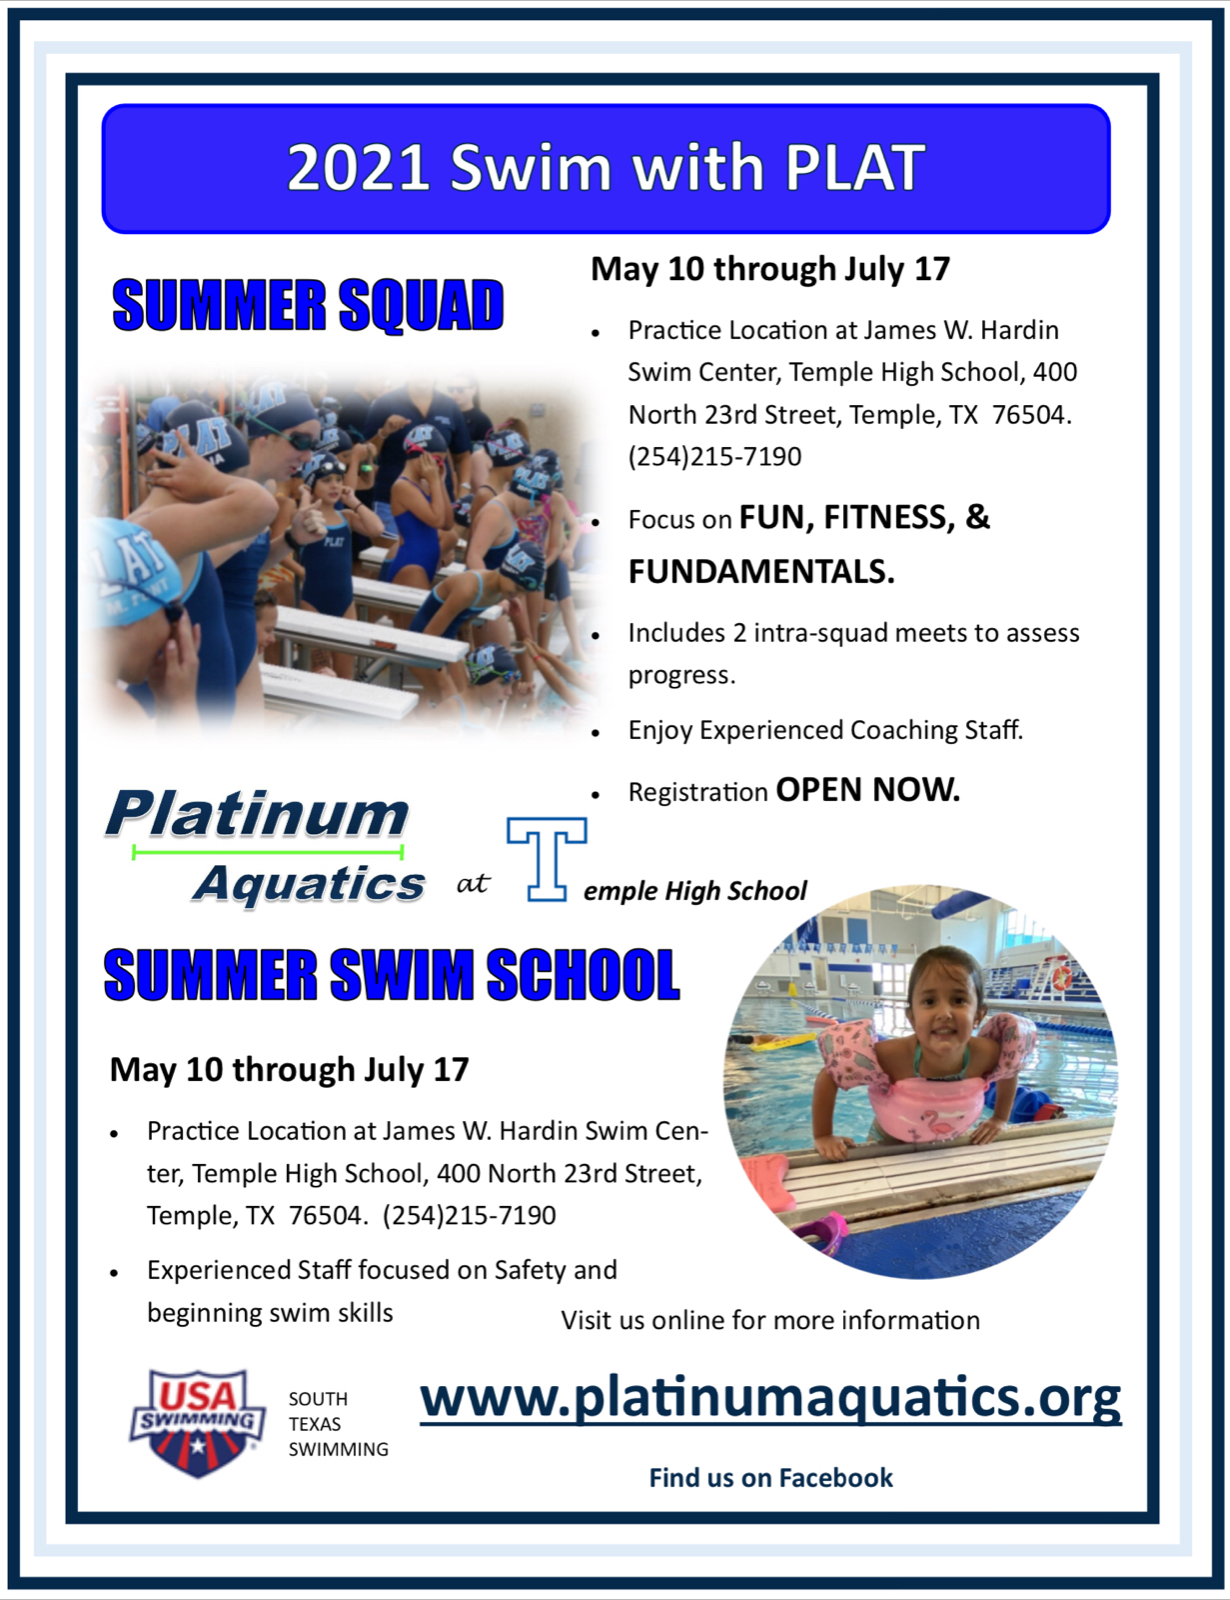 Summer Swim Lessons to start May 10